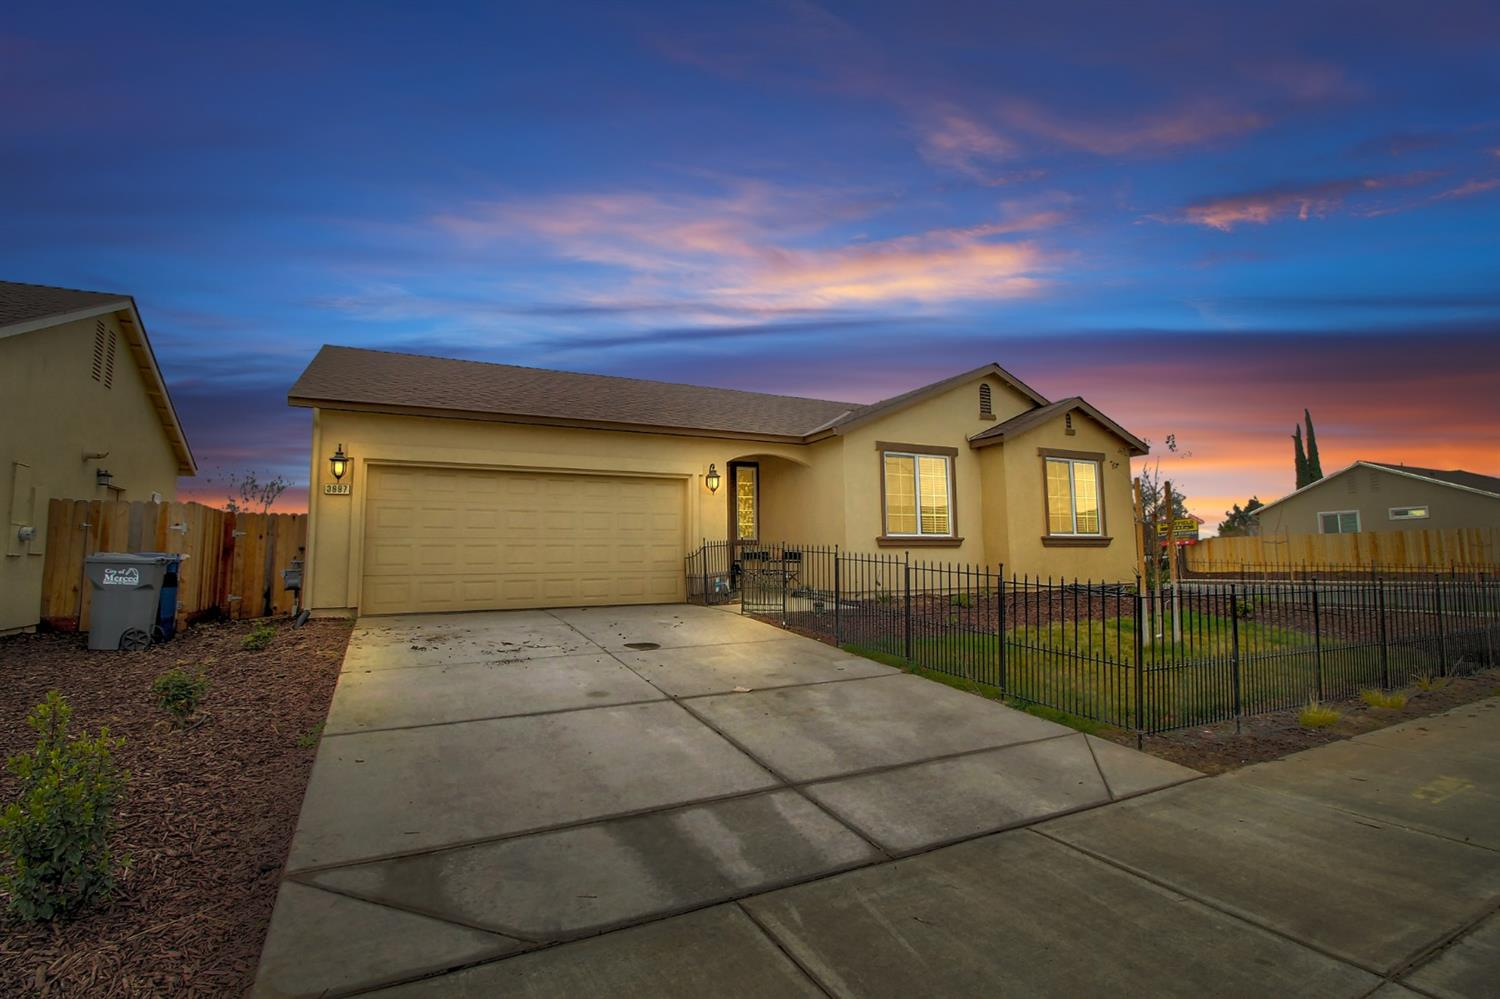 Photo of 3997 Bartley Court, Merced, CA 95348